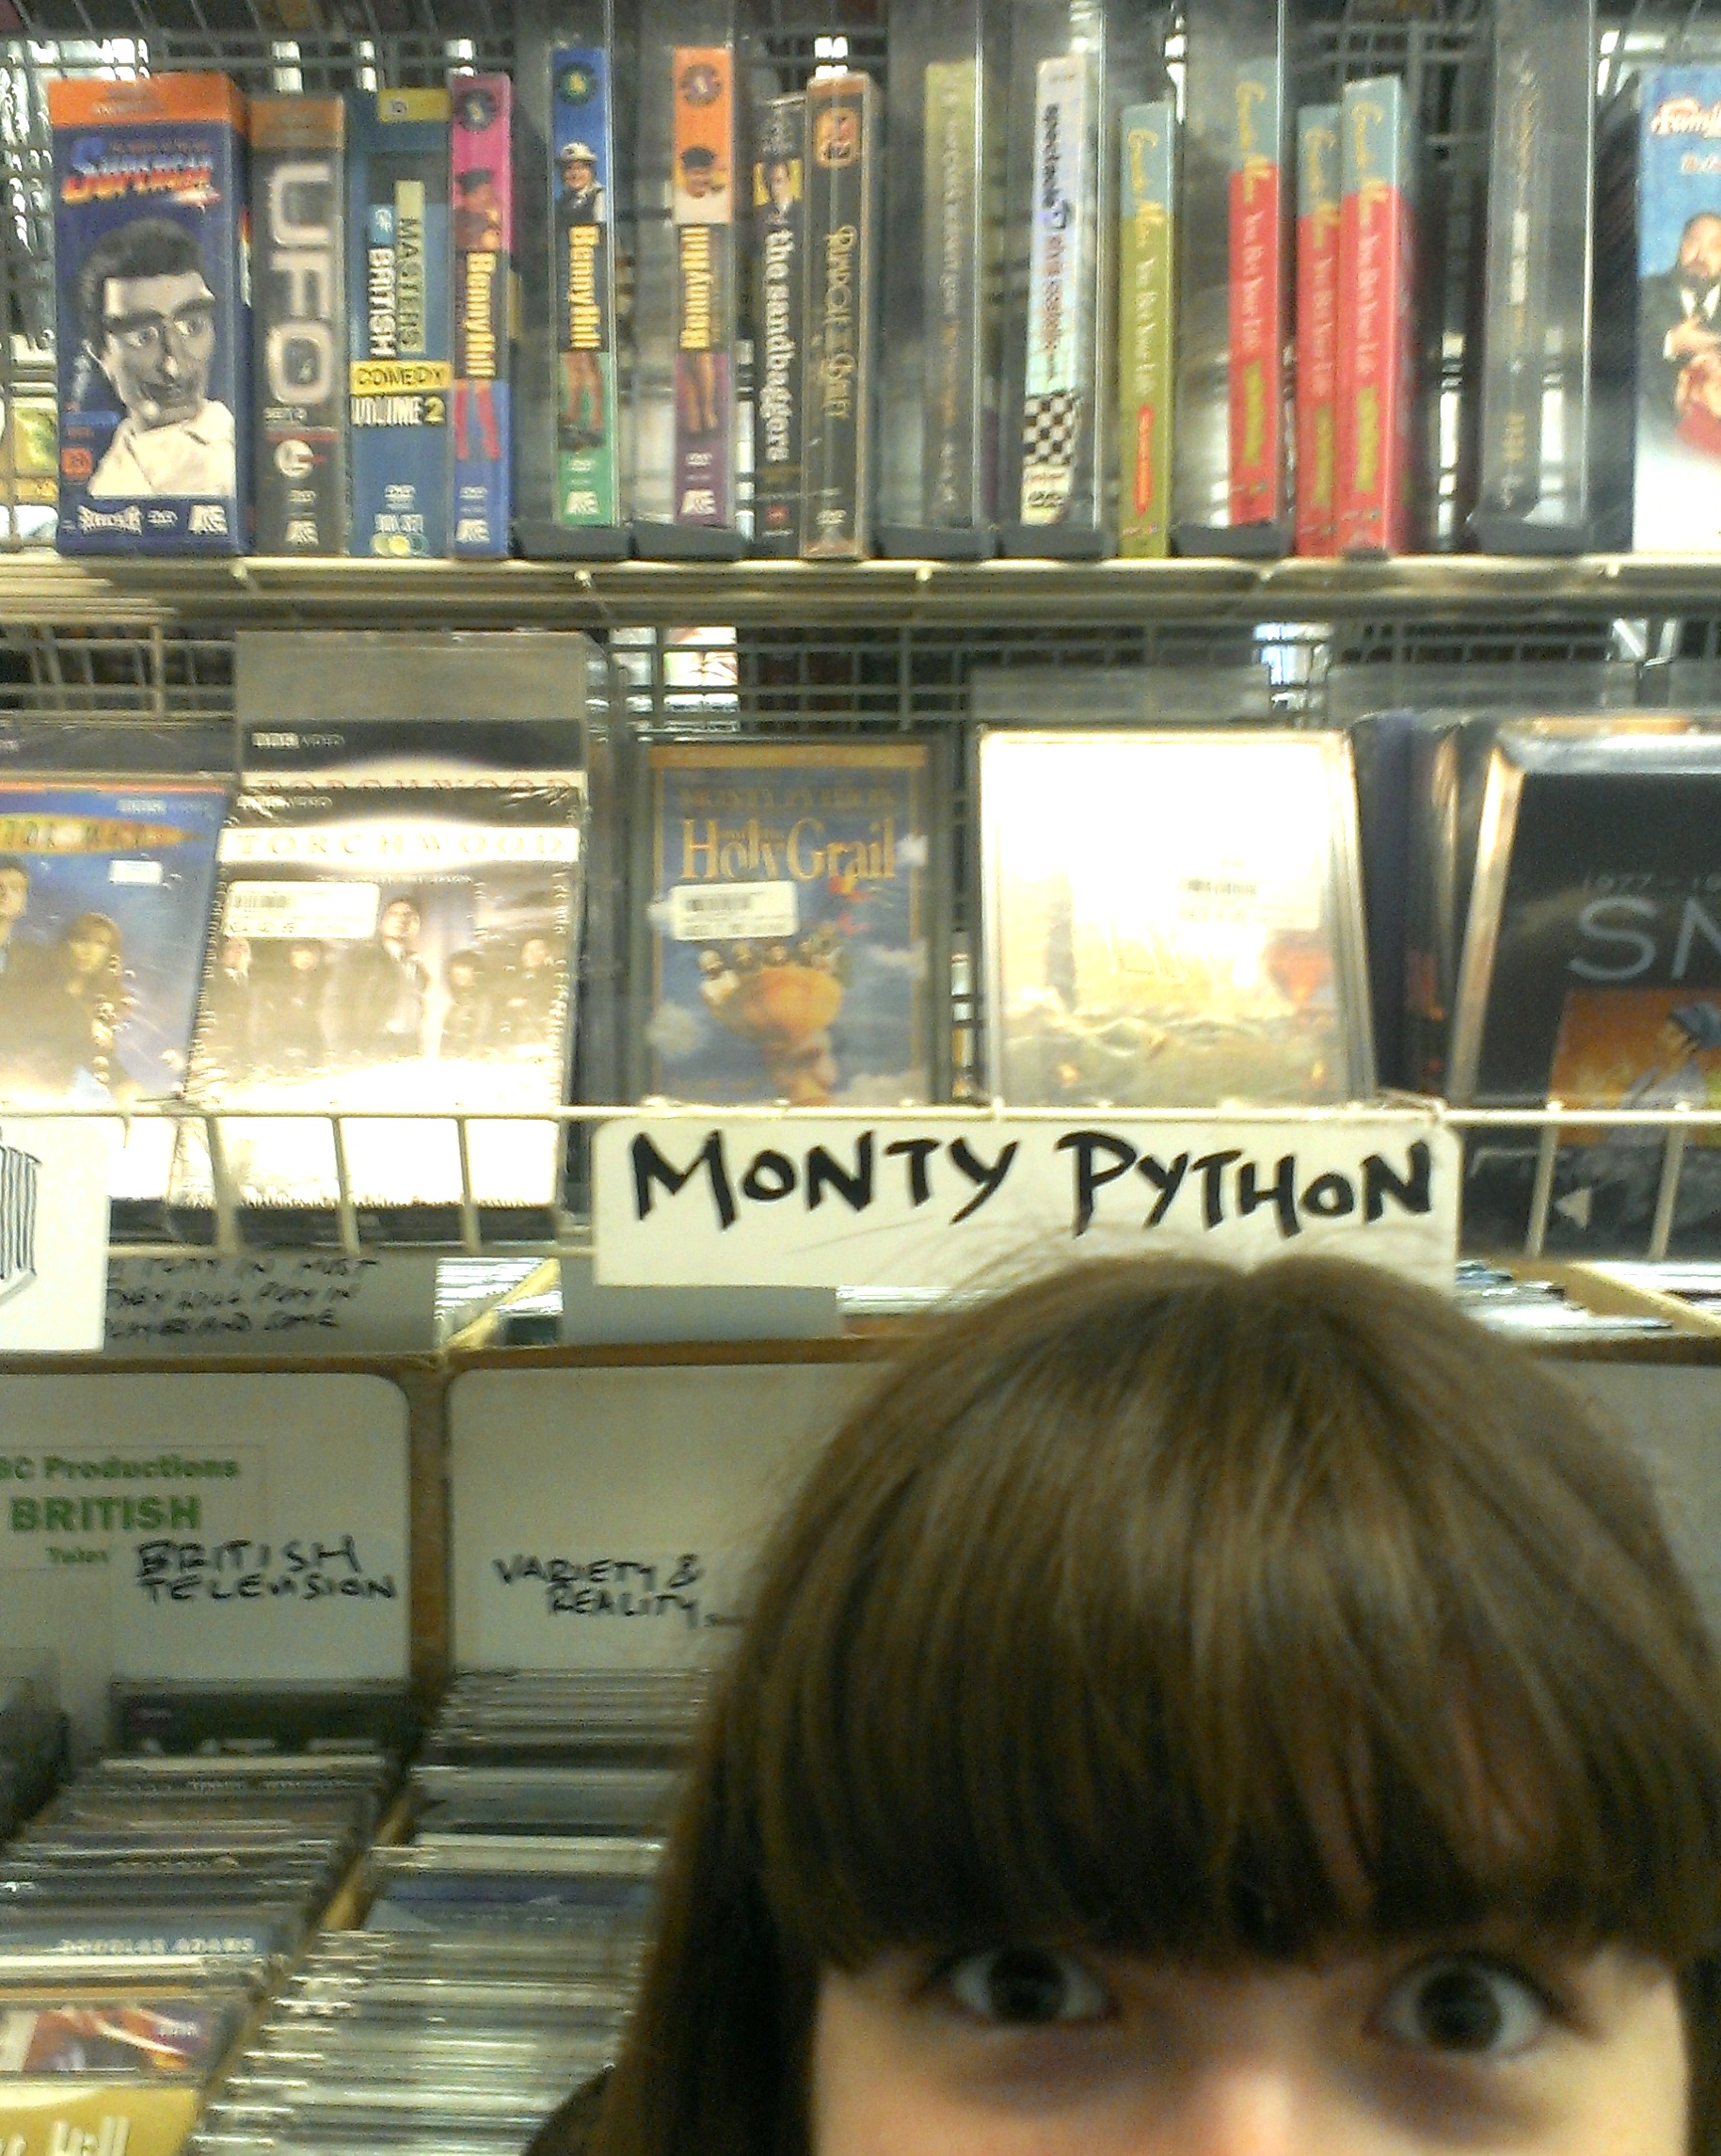 Lauren in the Monty Python section